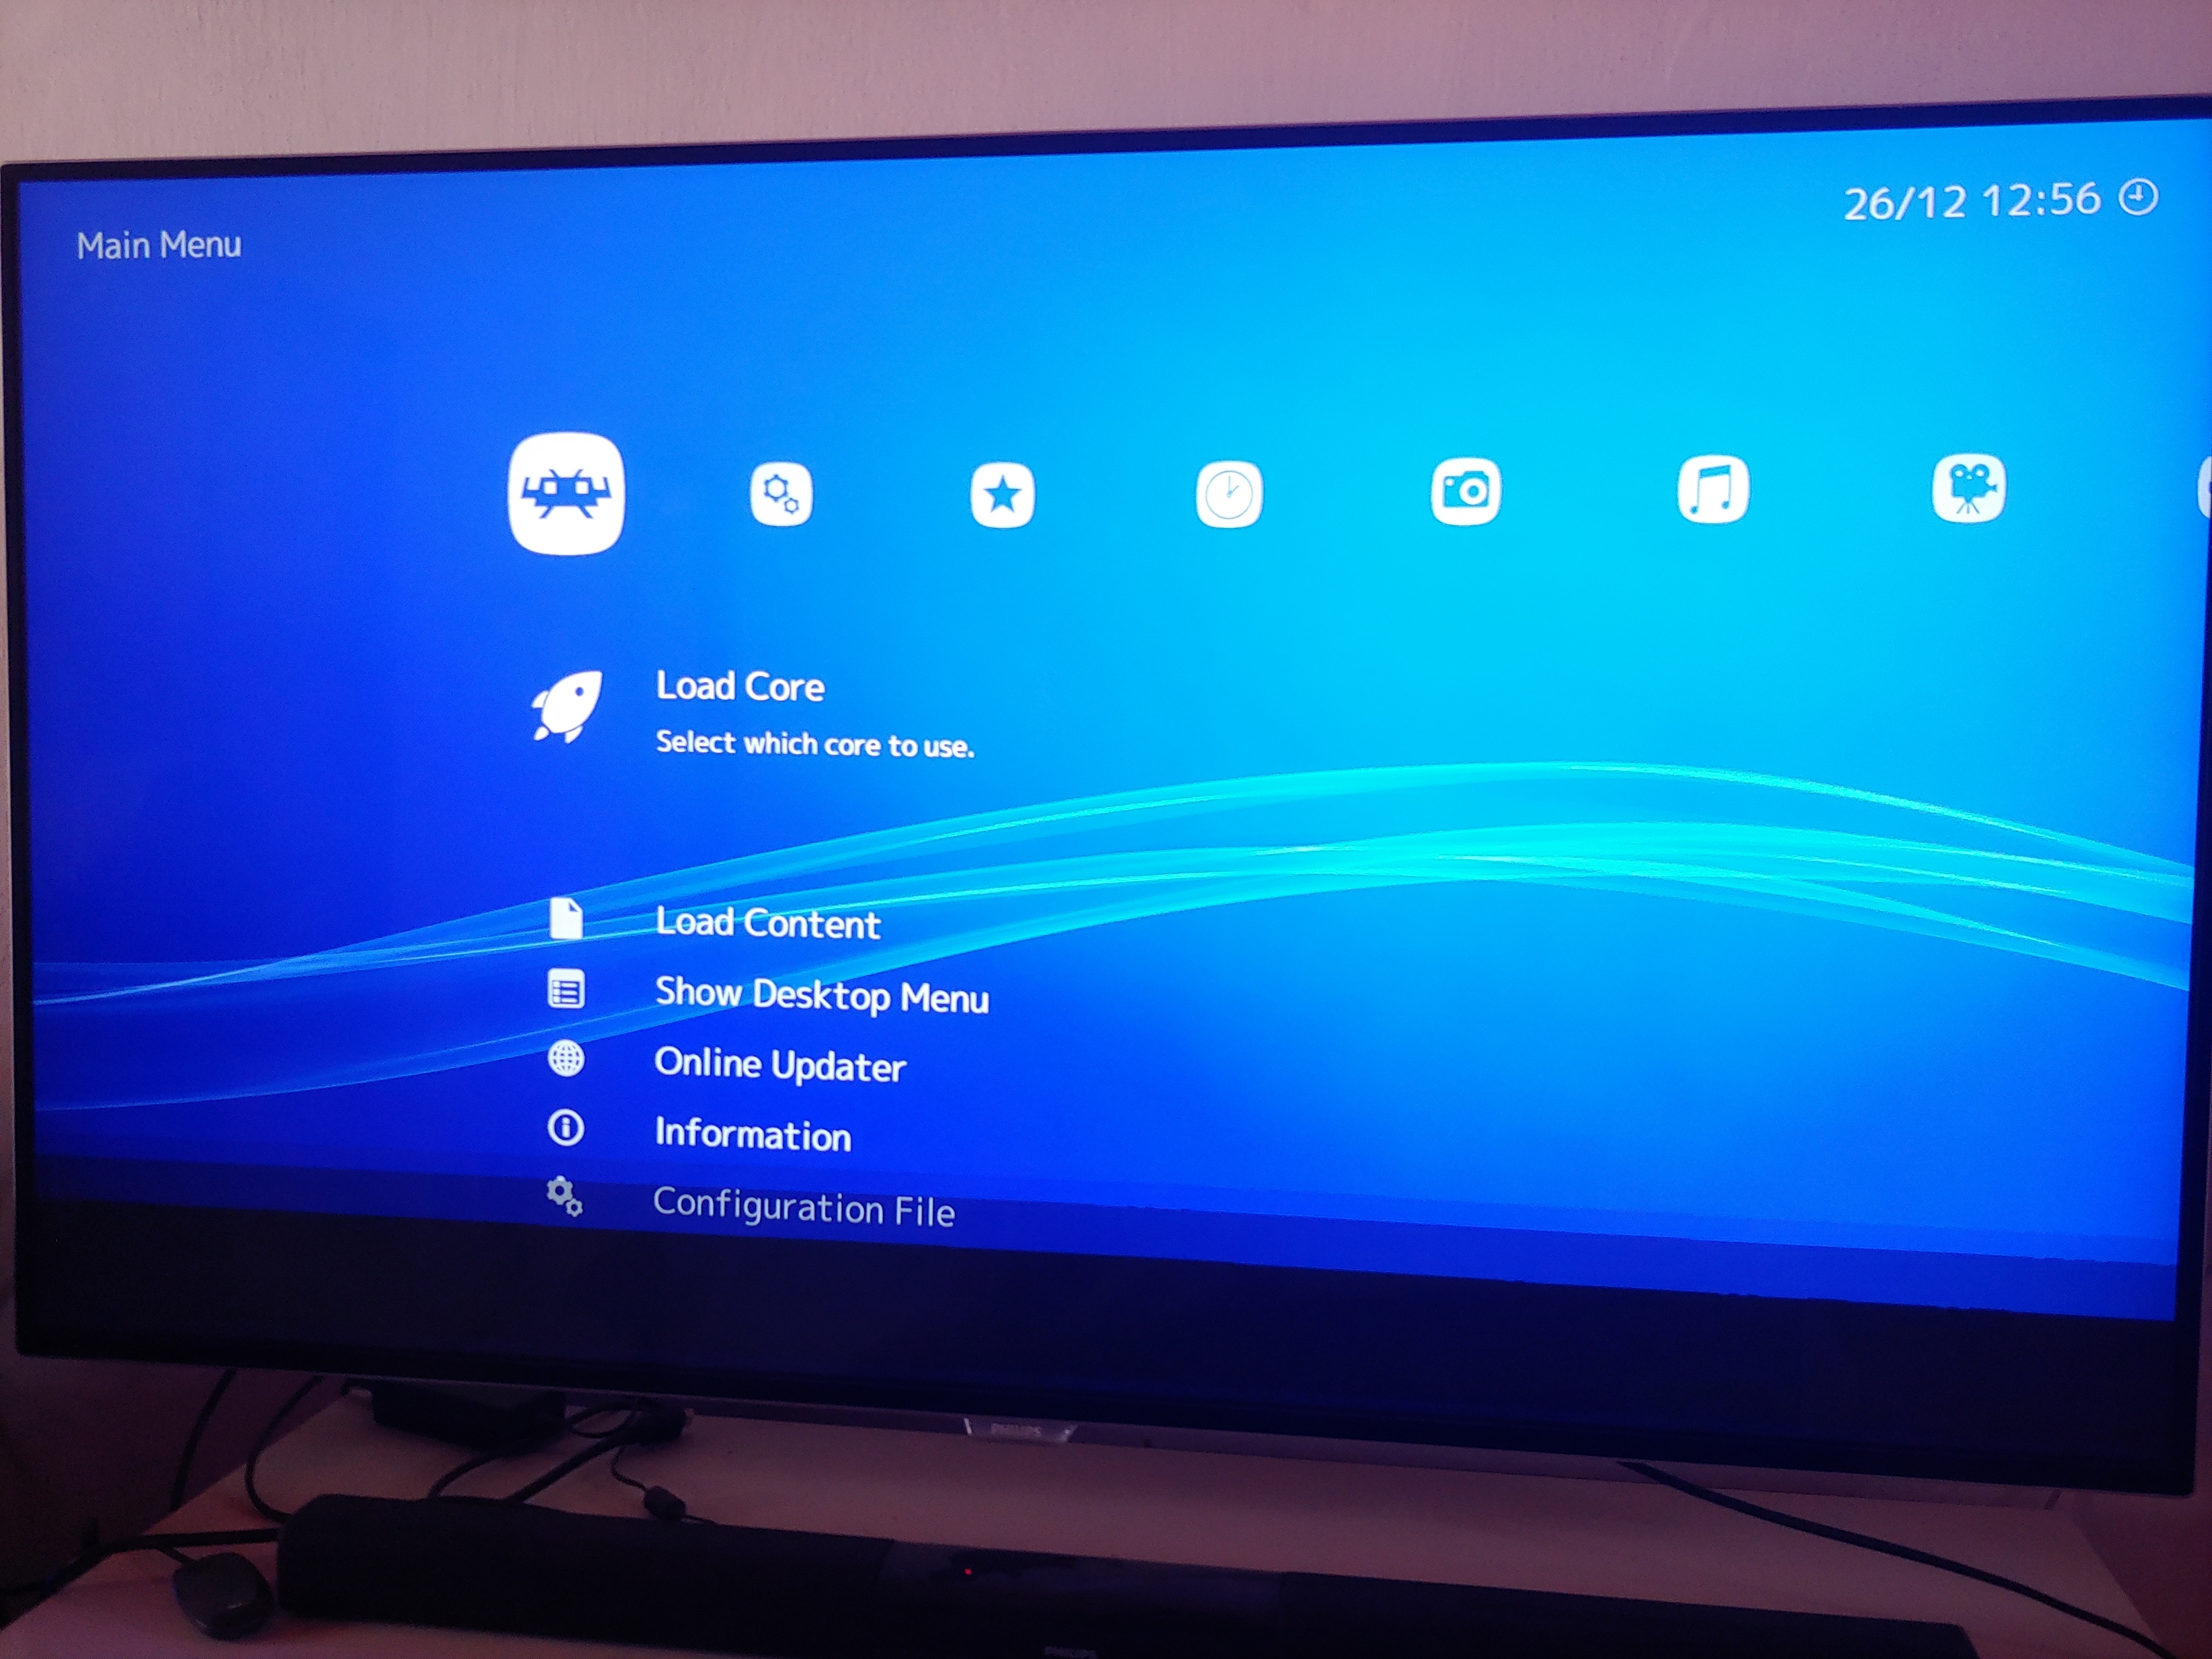 Retroarch displays corrupted graphics in full screen, Win10